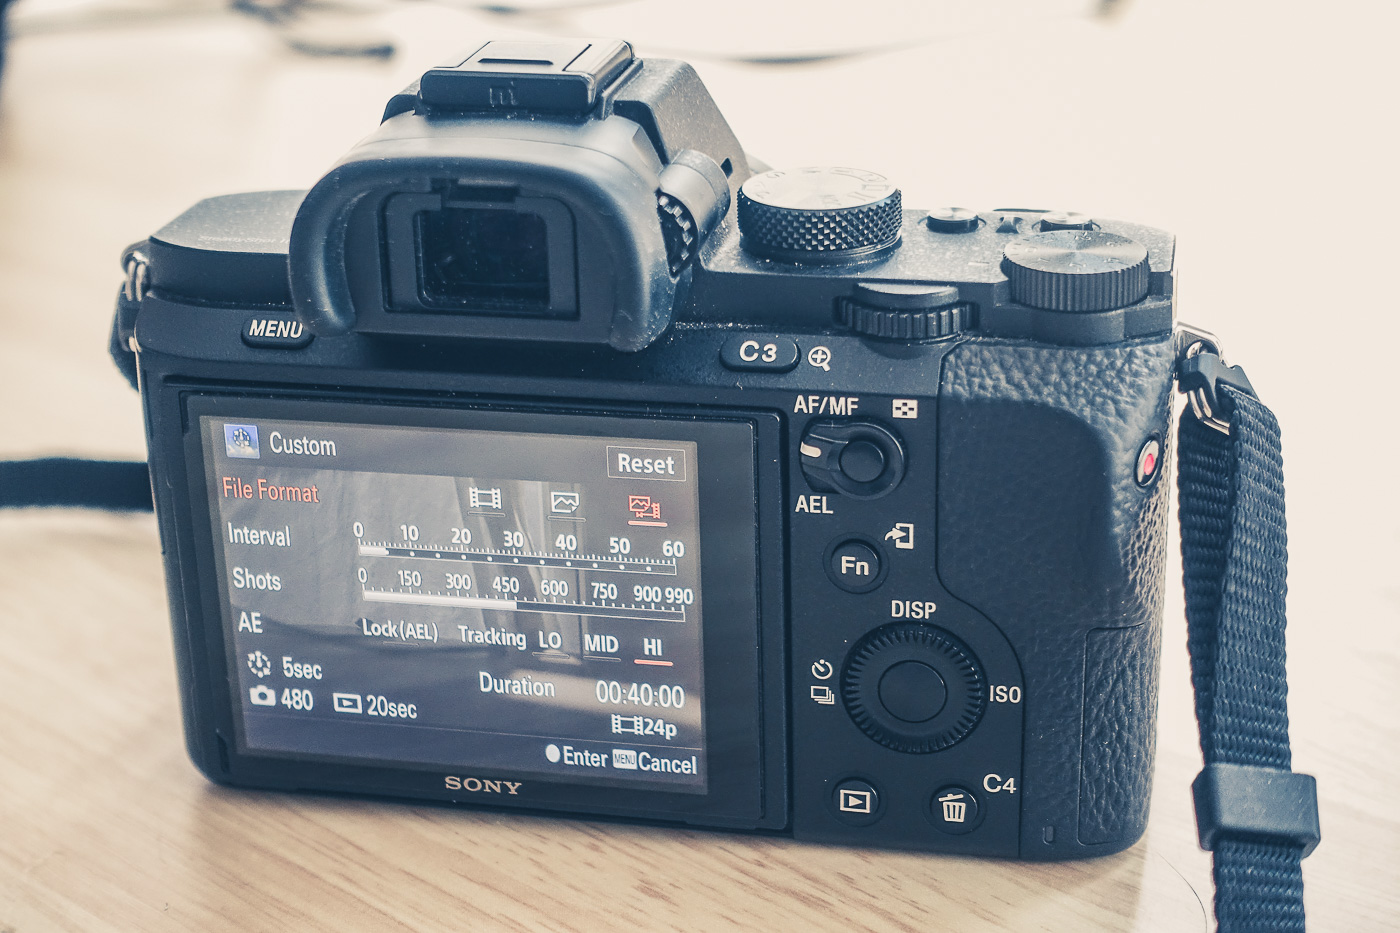 Sony a7II: A Real World Review